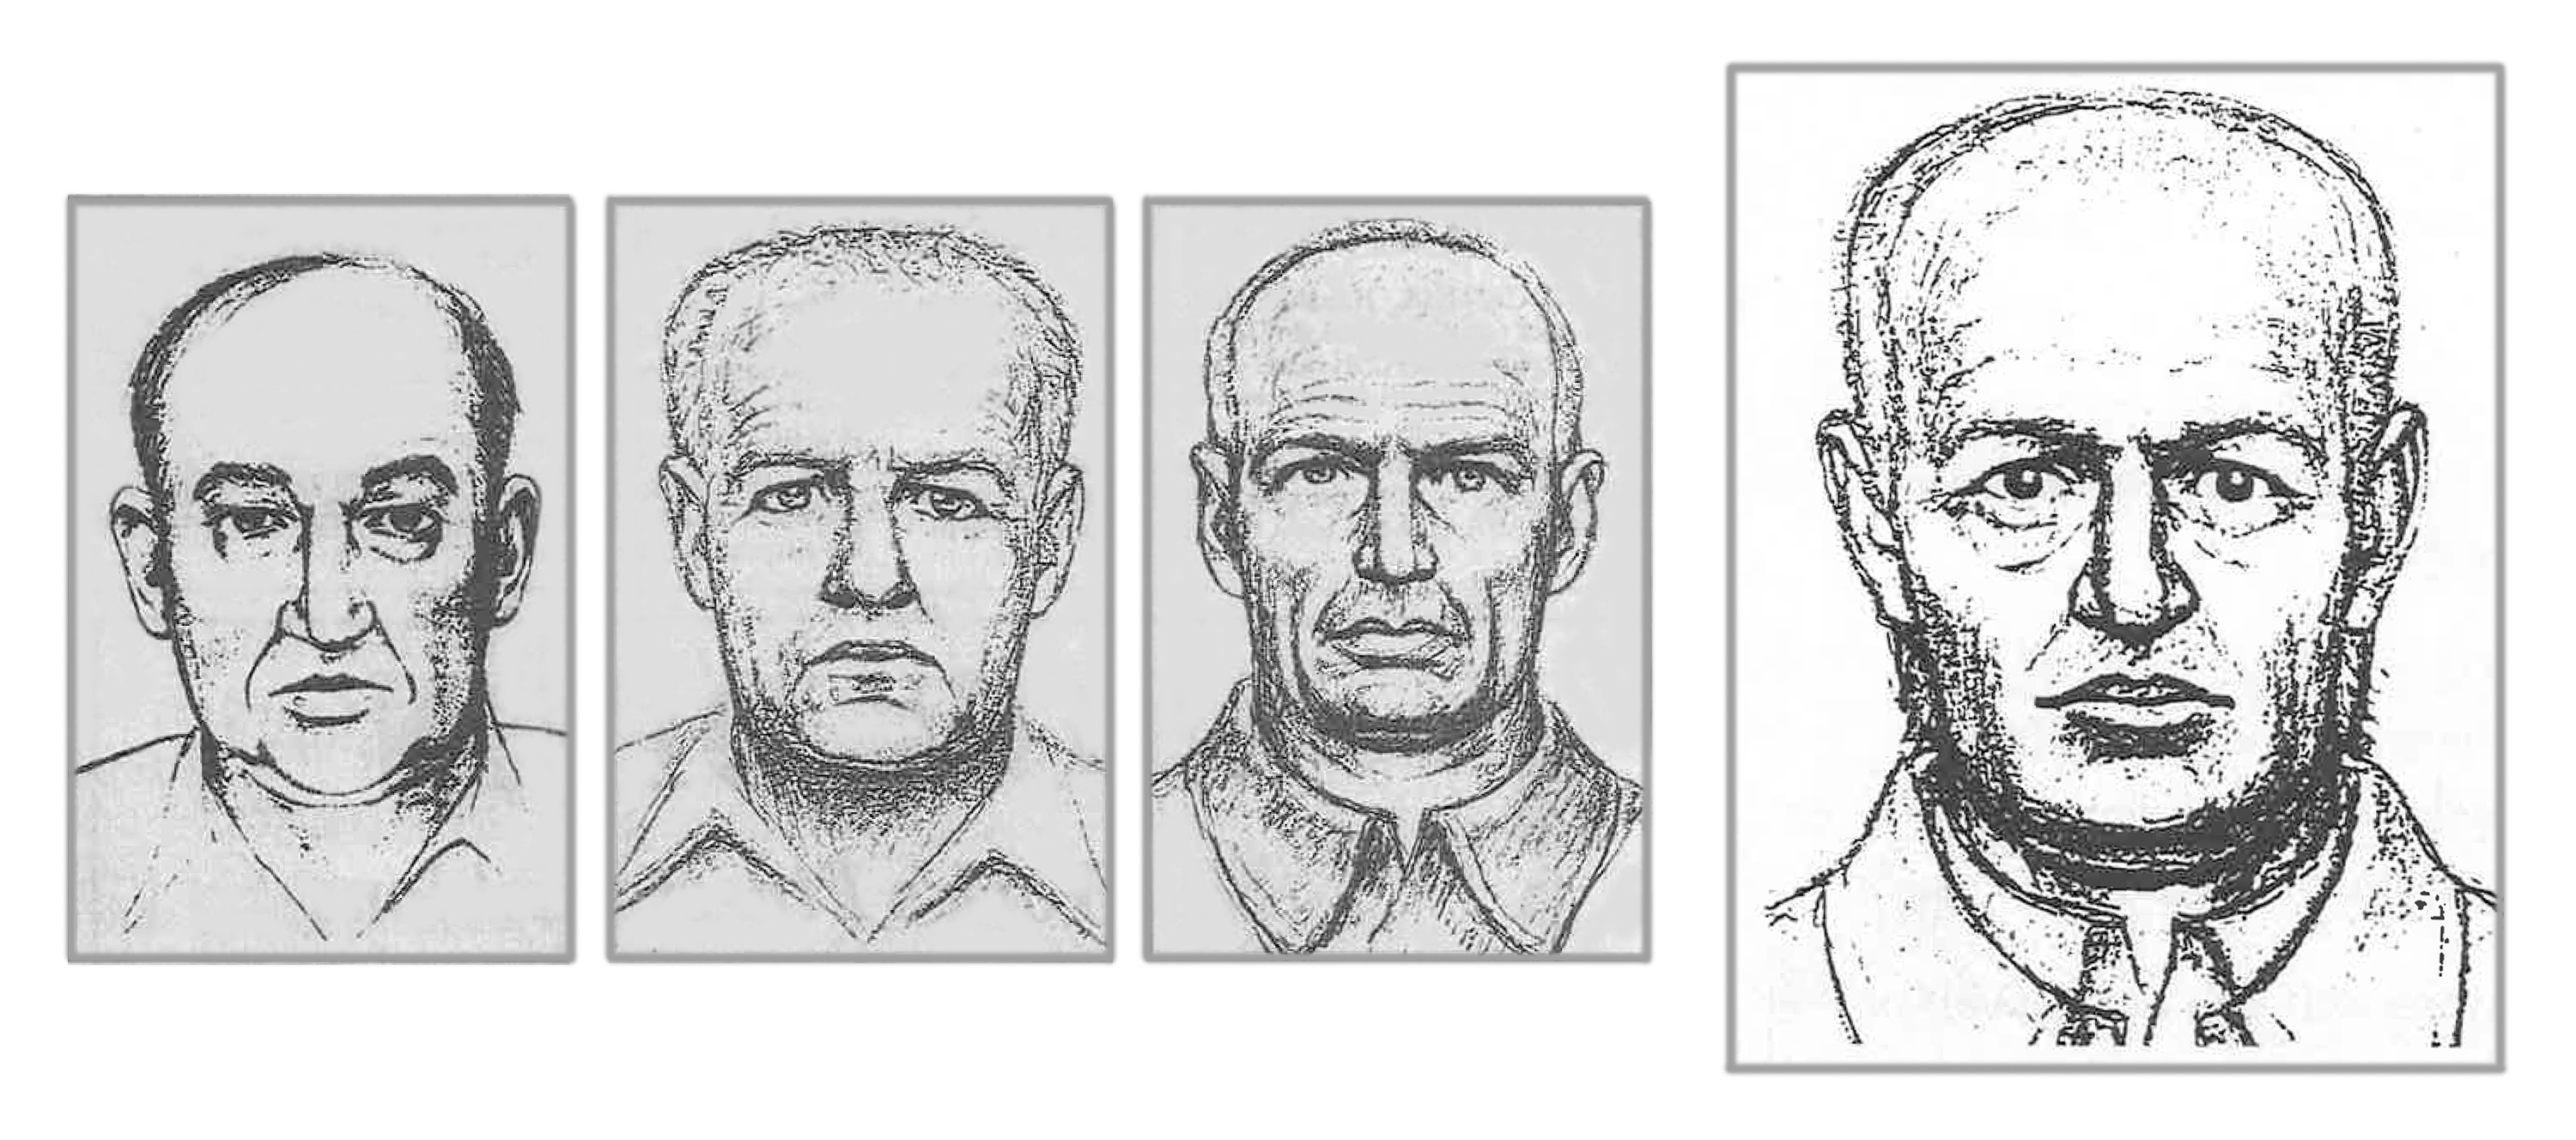 Wetterling composite sketch